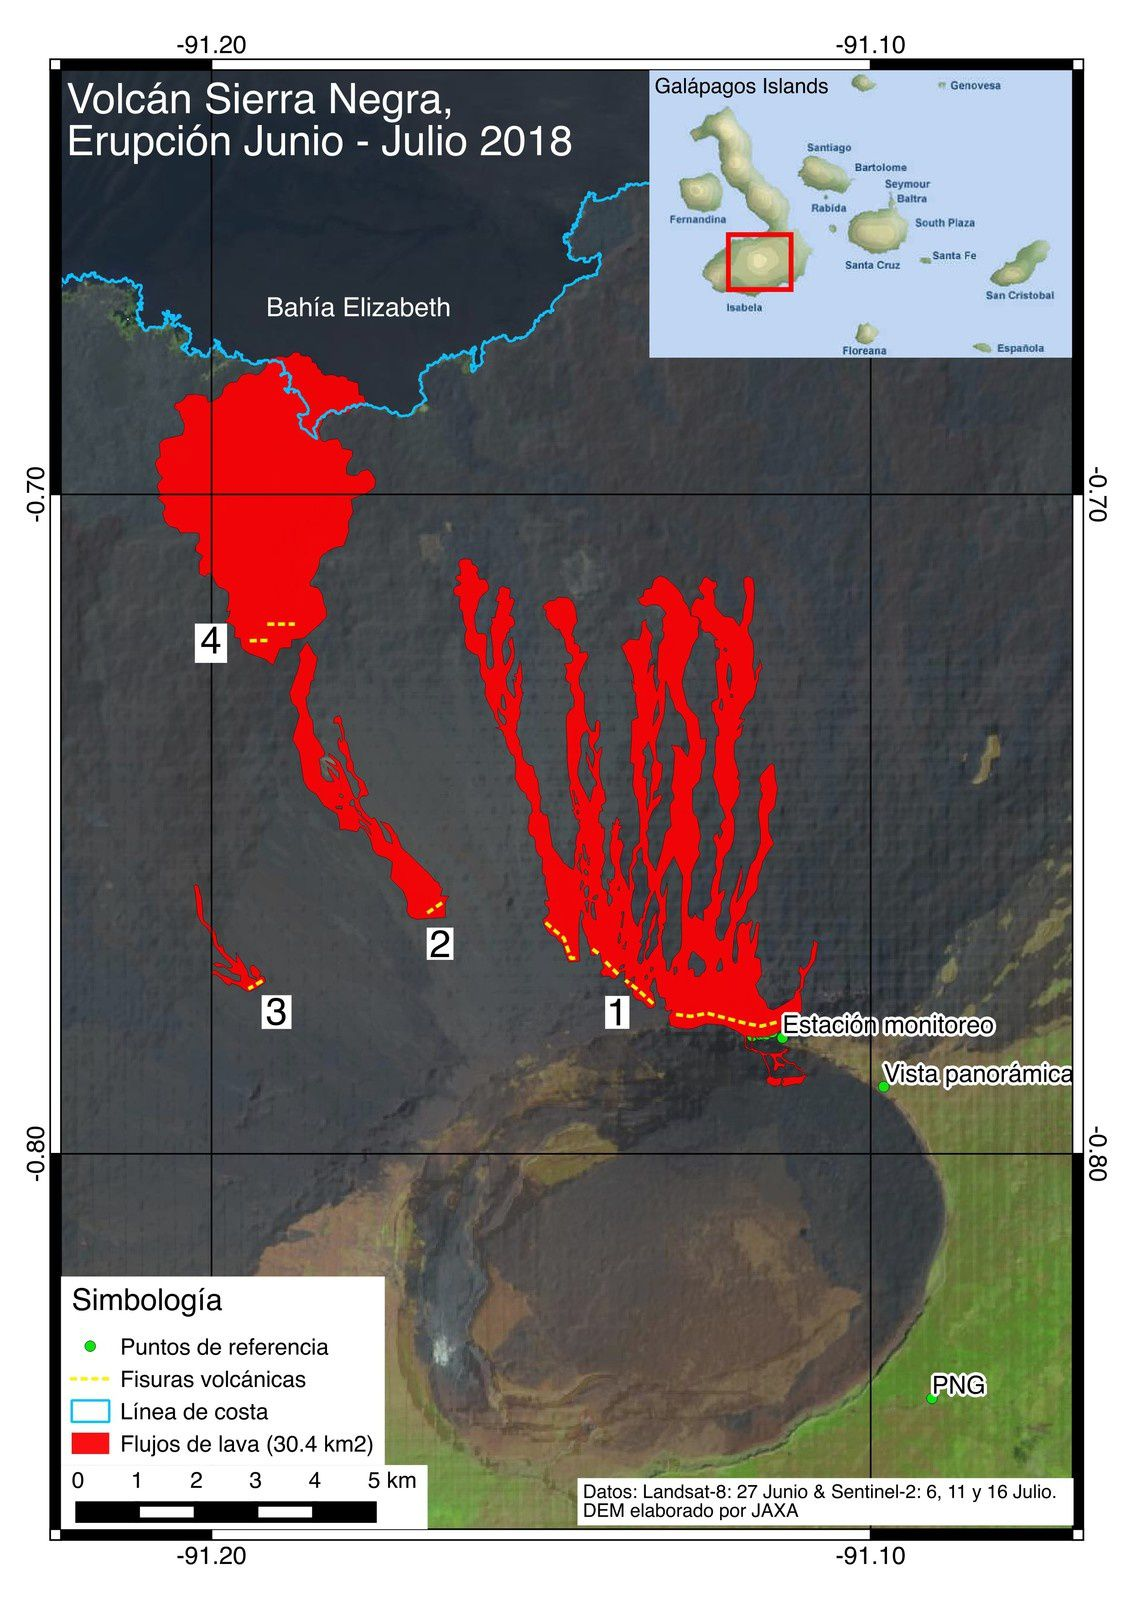 Sierra Negra - distribution of various fissures and lava flows, updated on 16.07.2018 - Doc. IGEPN